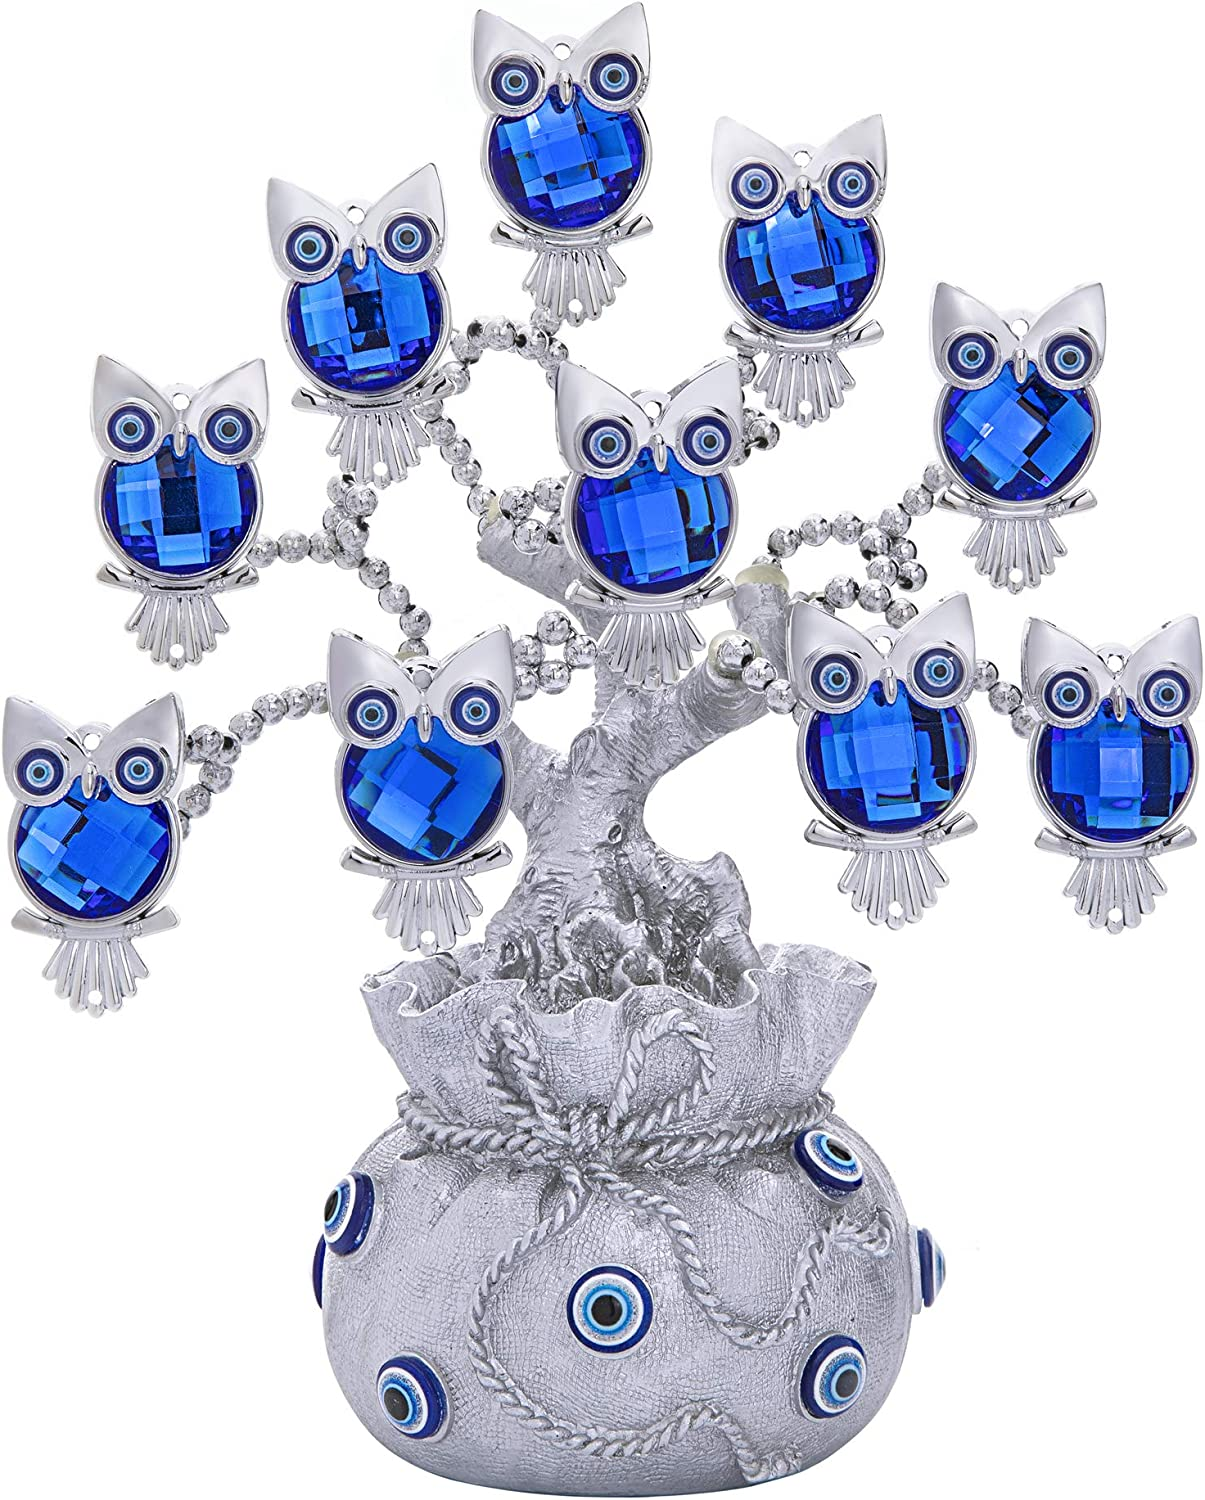 YU FENG Owl Figurines Decorations Turkish Evil Eye Tree with Silver Lucky Bag for Home Decor Good Luck Protection Gift